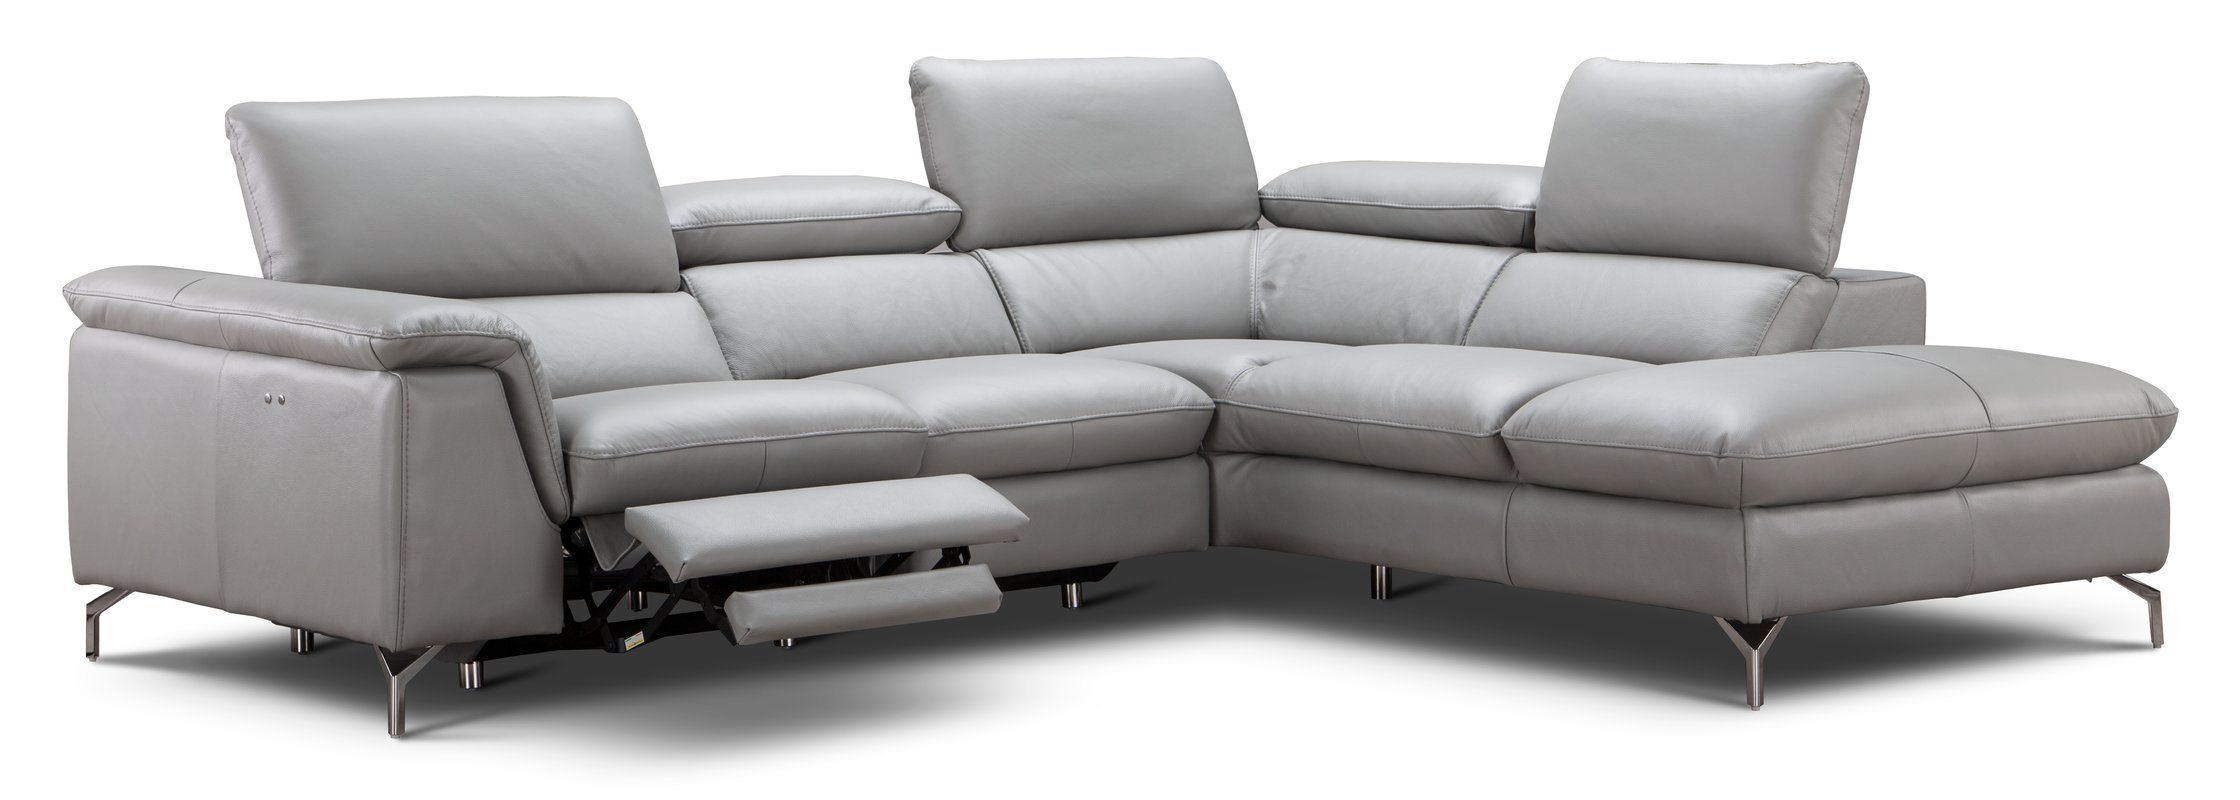 Dupont Leather 105 8 Reclining Sectional Italian Leather